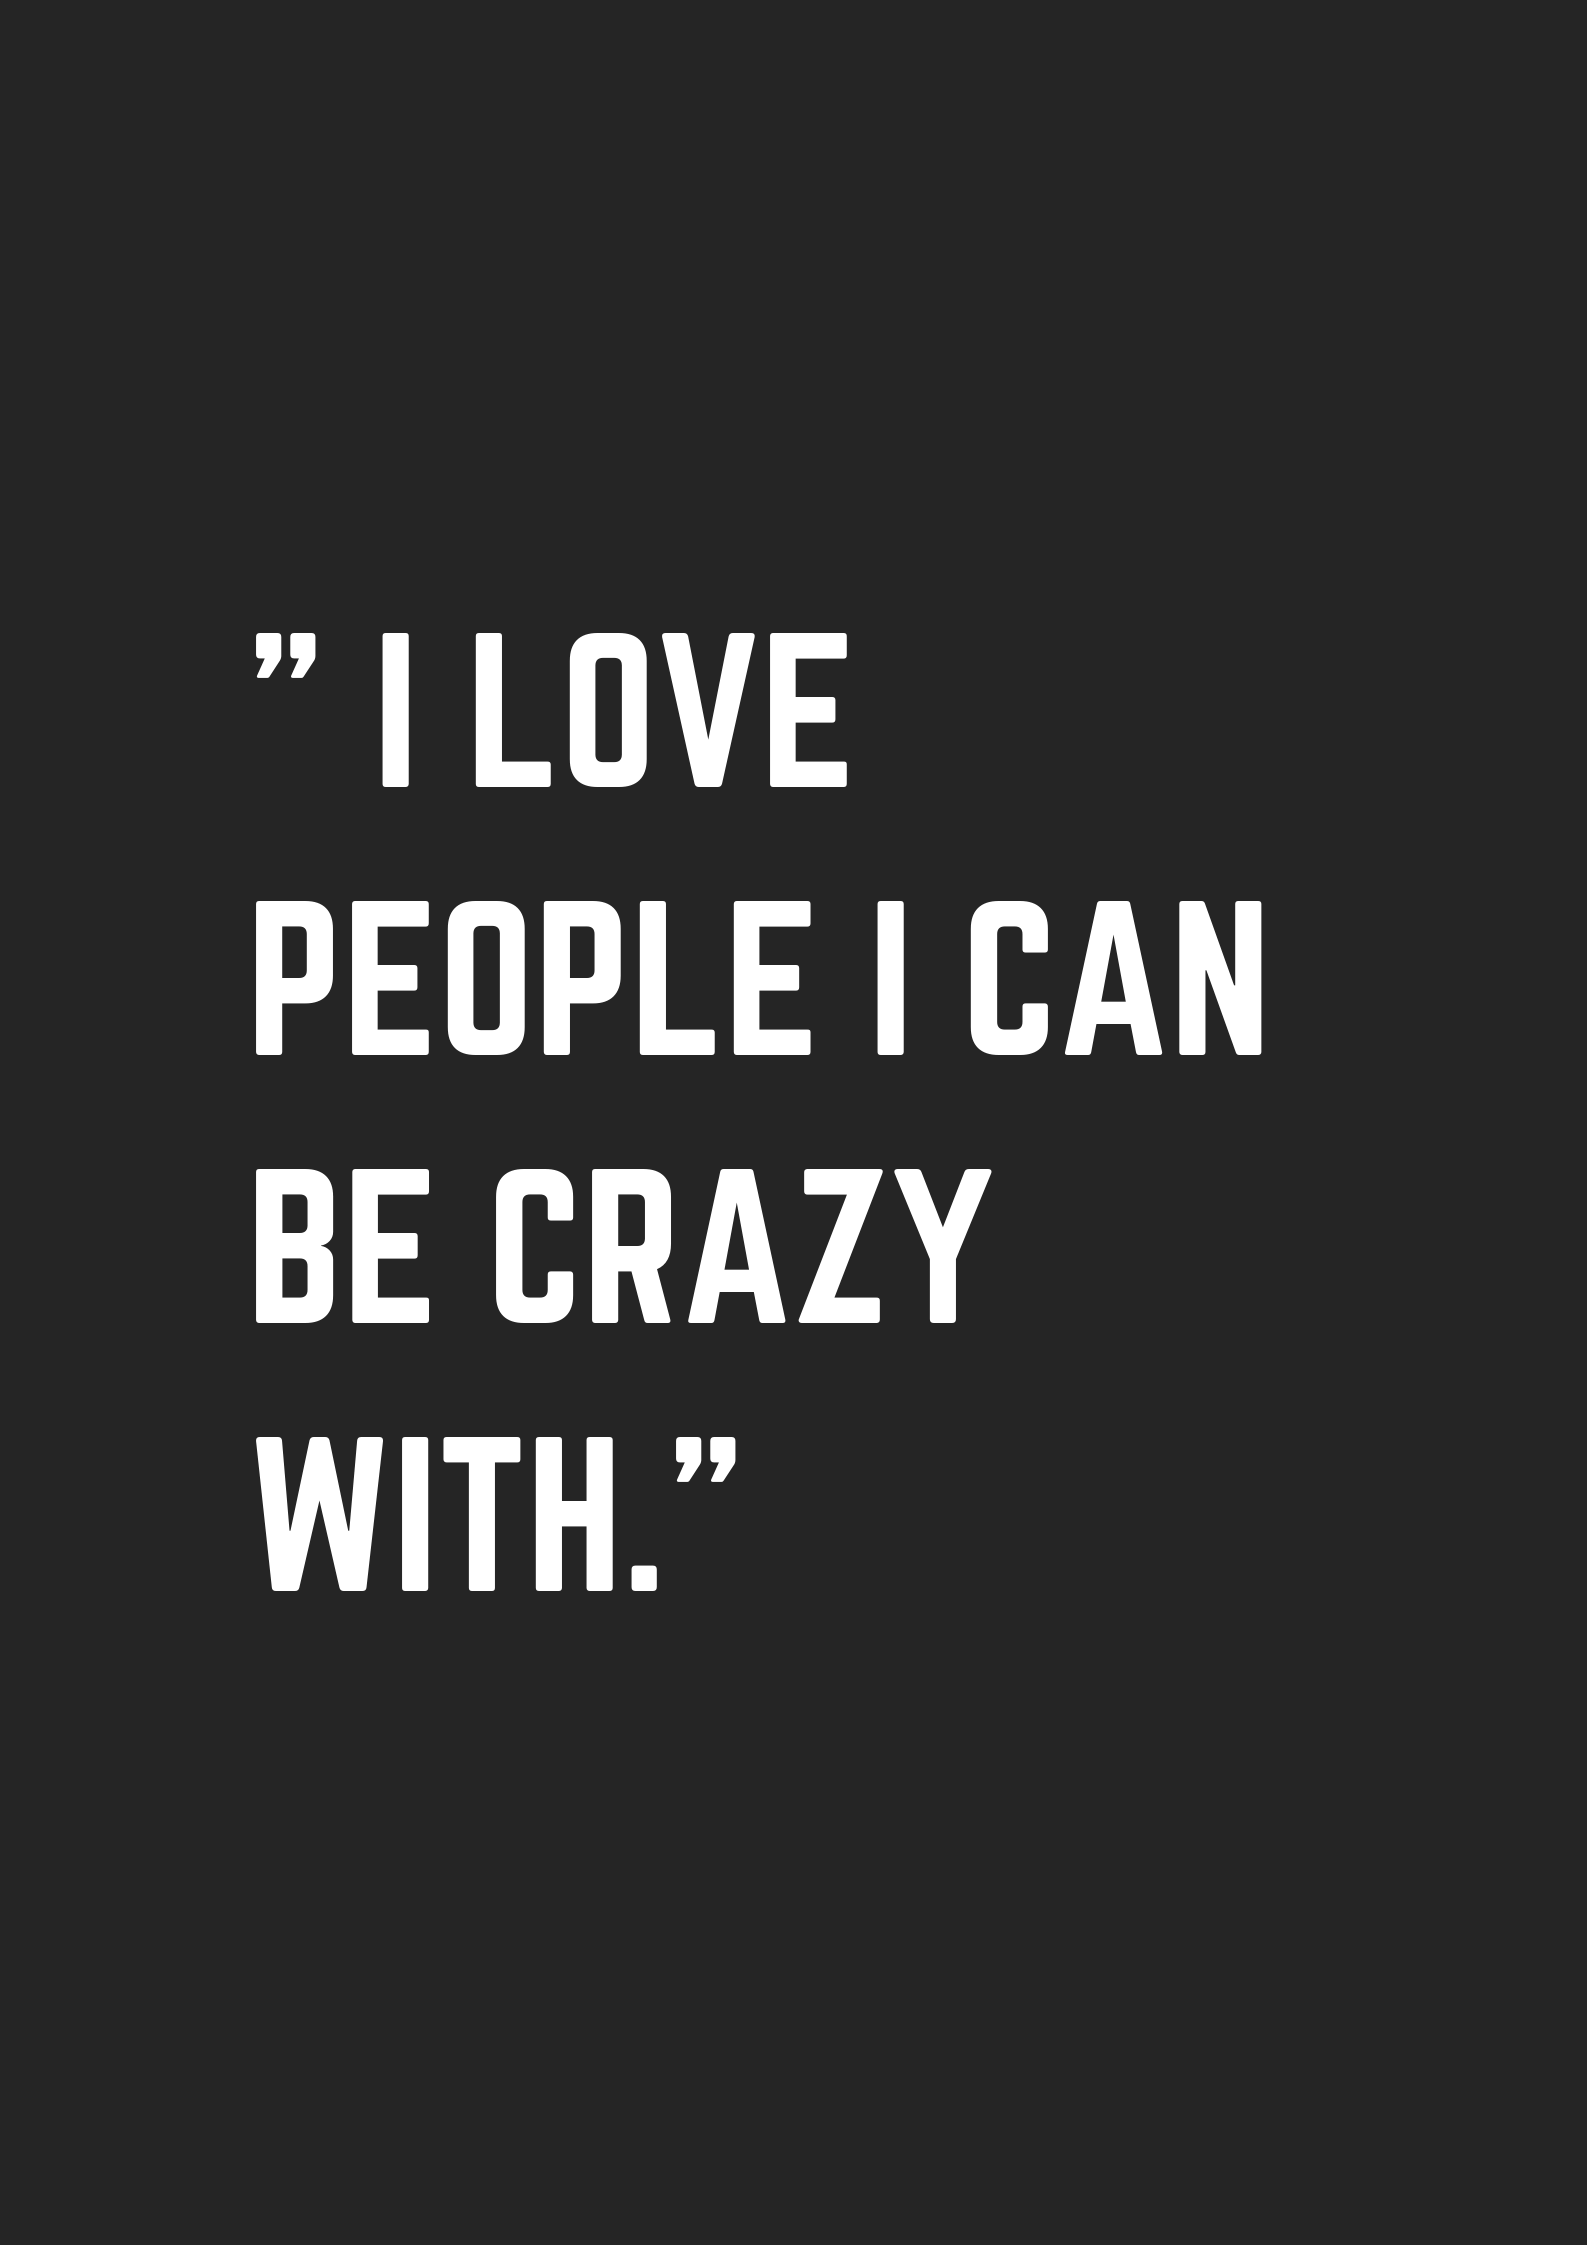 List of Good Flirty Quotes Sassy 2020 by museuly.com